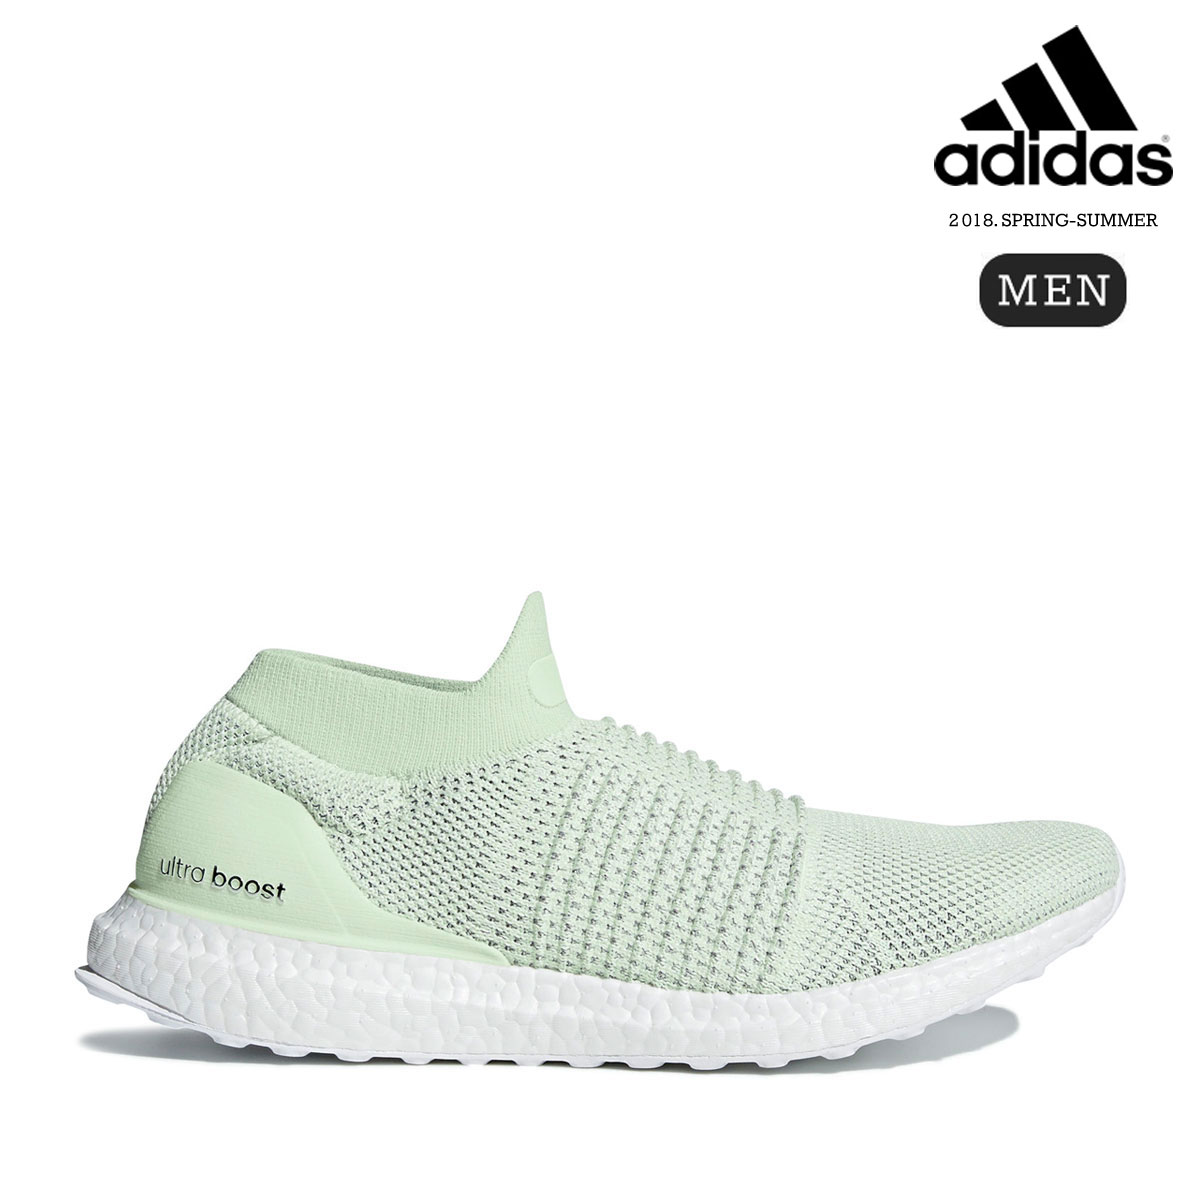 99d2a6564f5a8 adidas UltraBOOST LACELESS LTD (Ash Green Aero Green Running White)